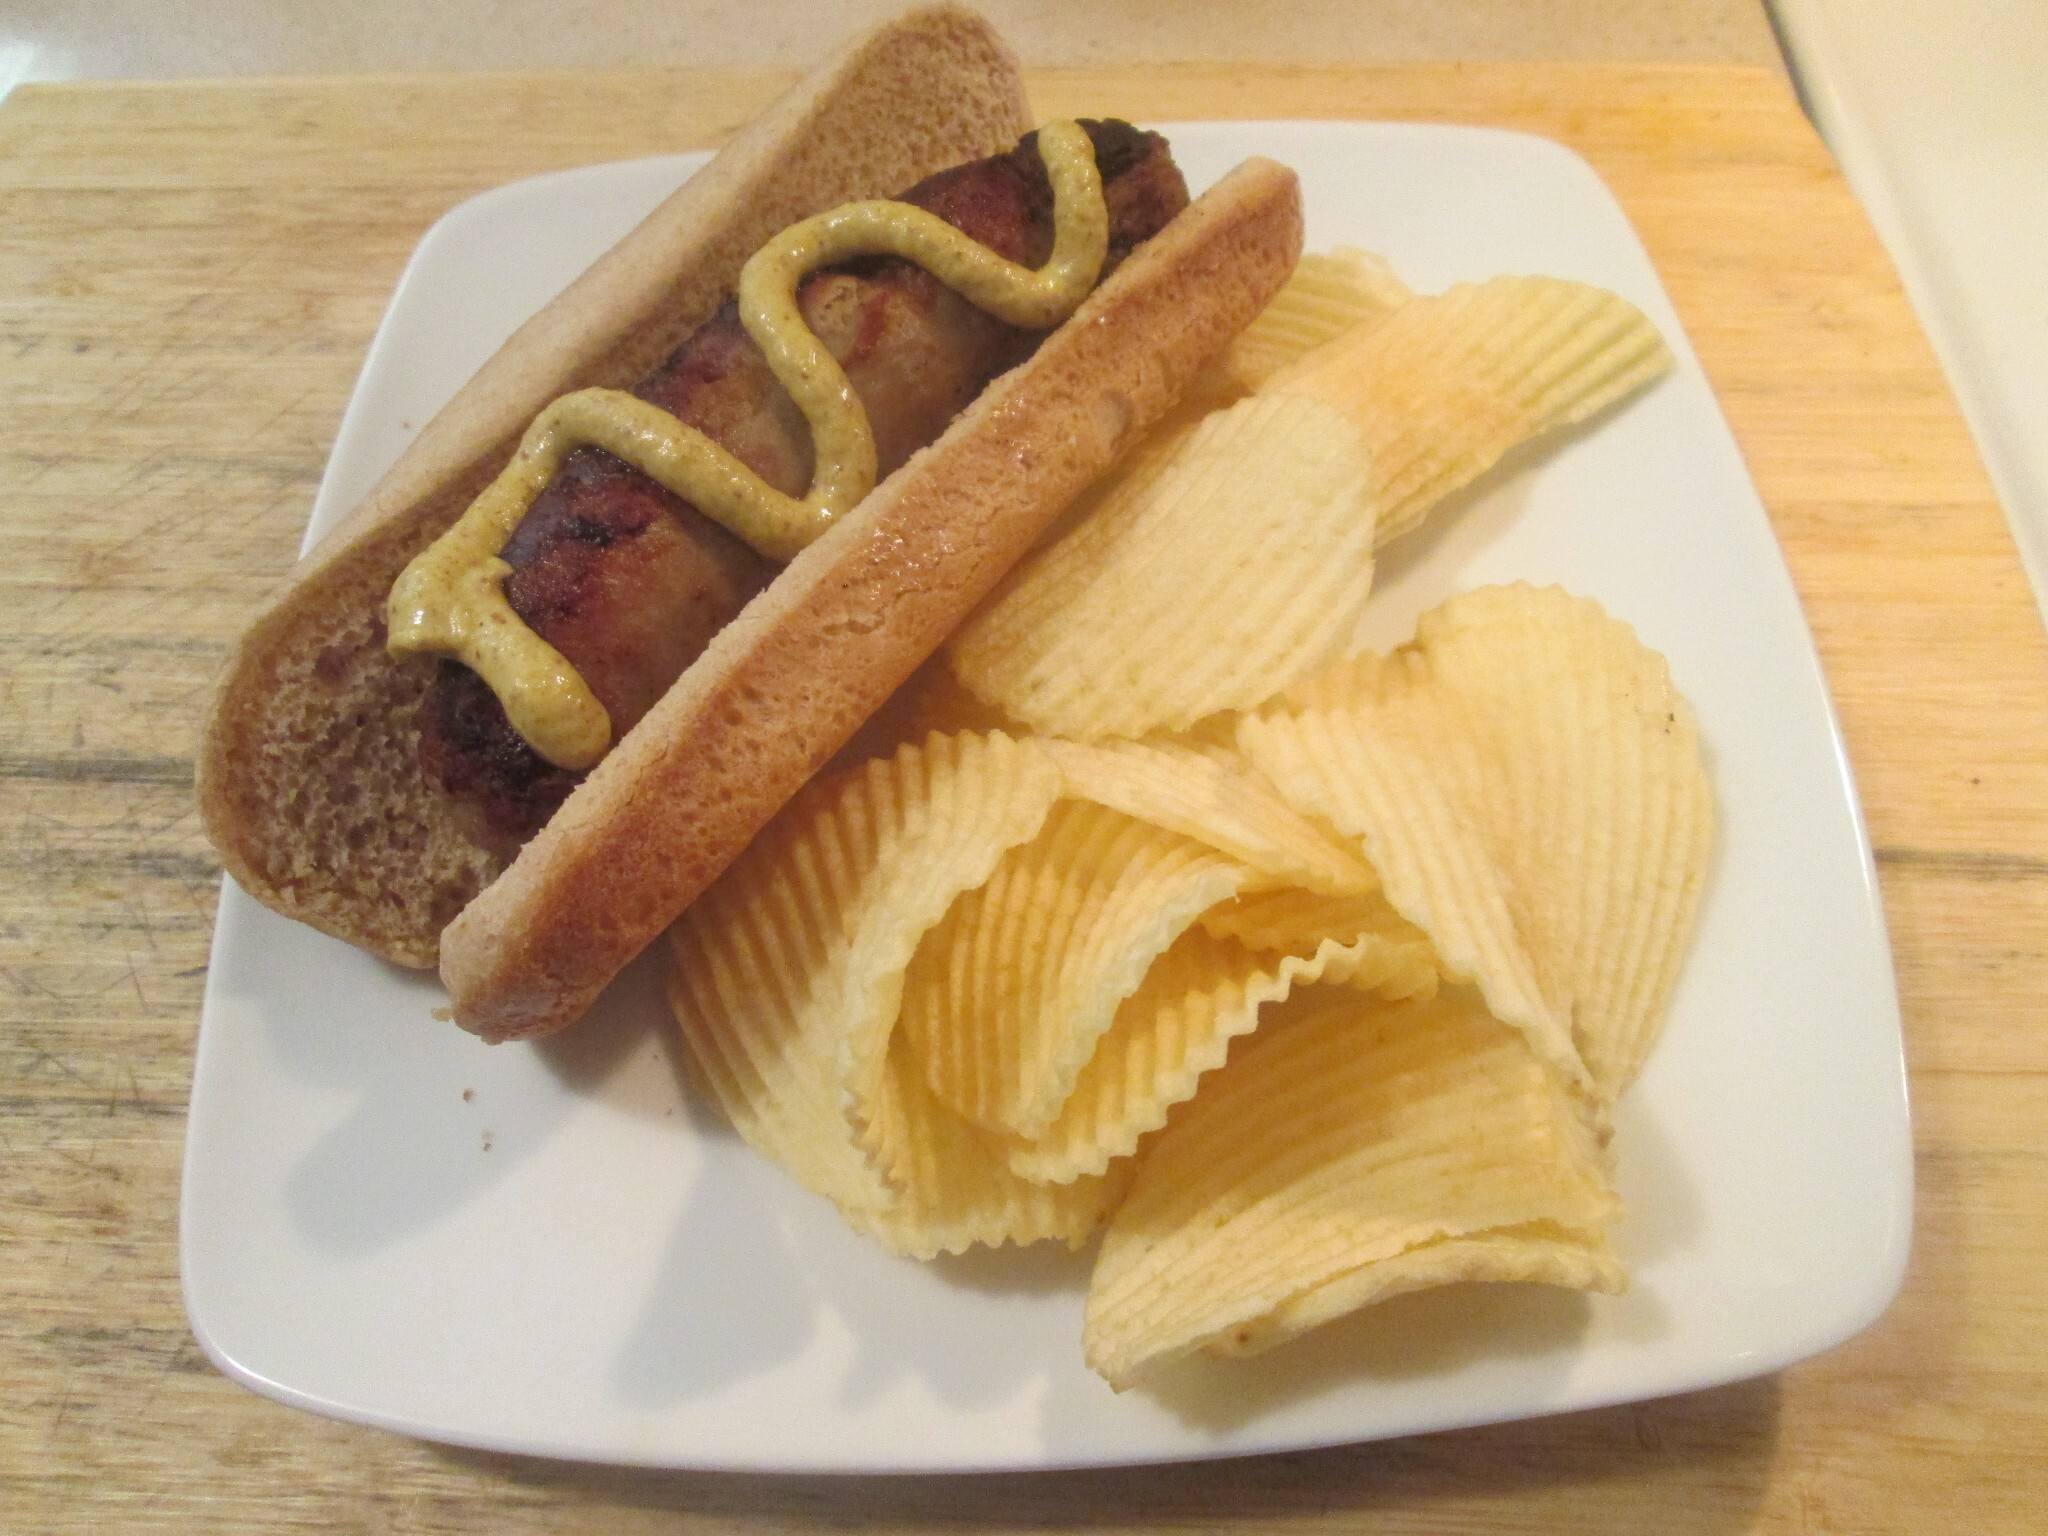 Sweet Italian Turkey Sausage w/ Pringle's Fat Free Chips